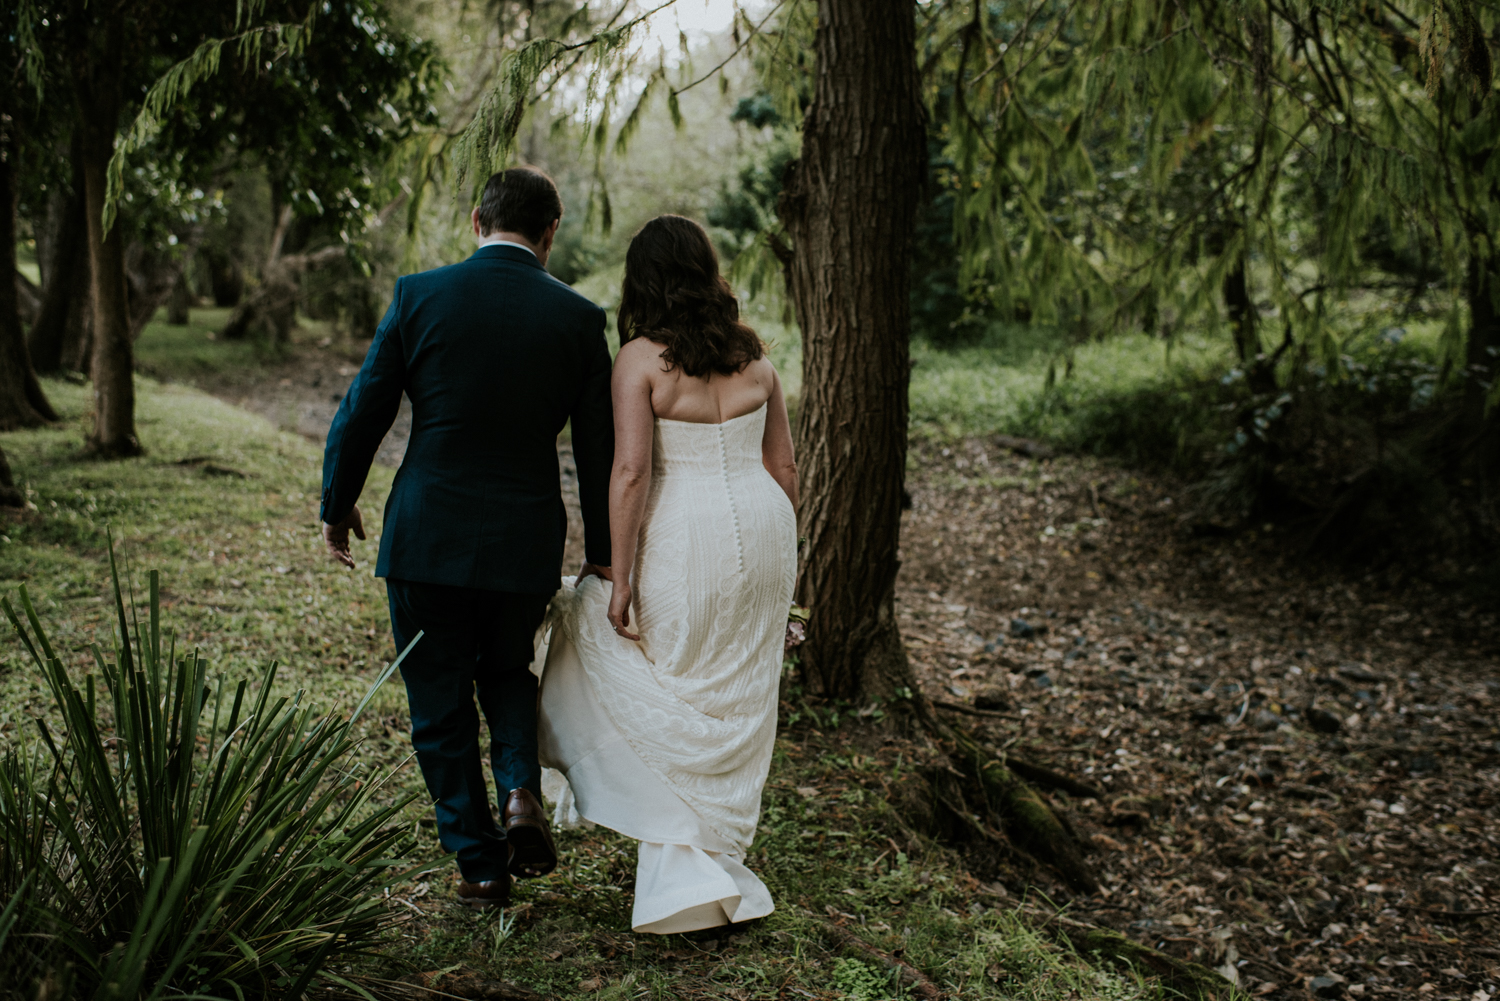 Brisbane Wedding Photographer | Bundaleer Rainforest Gardens-39.jpg